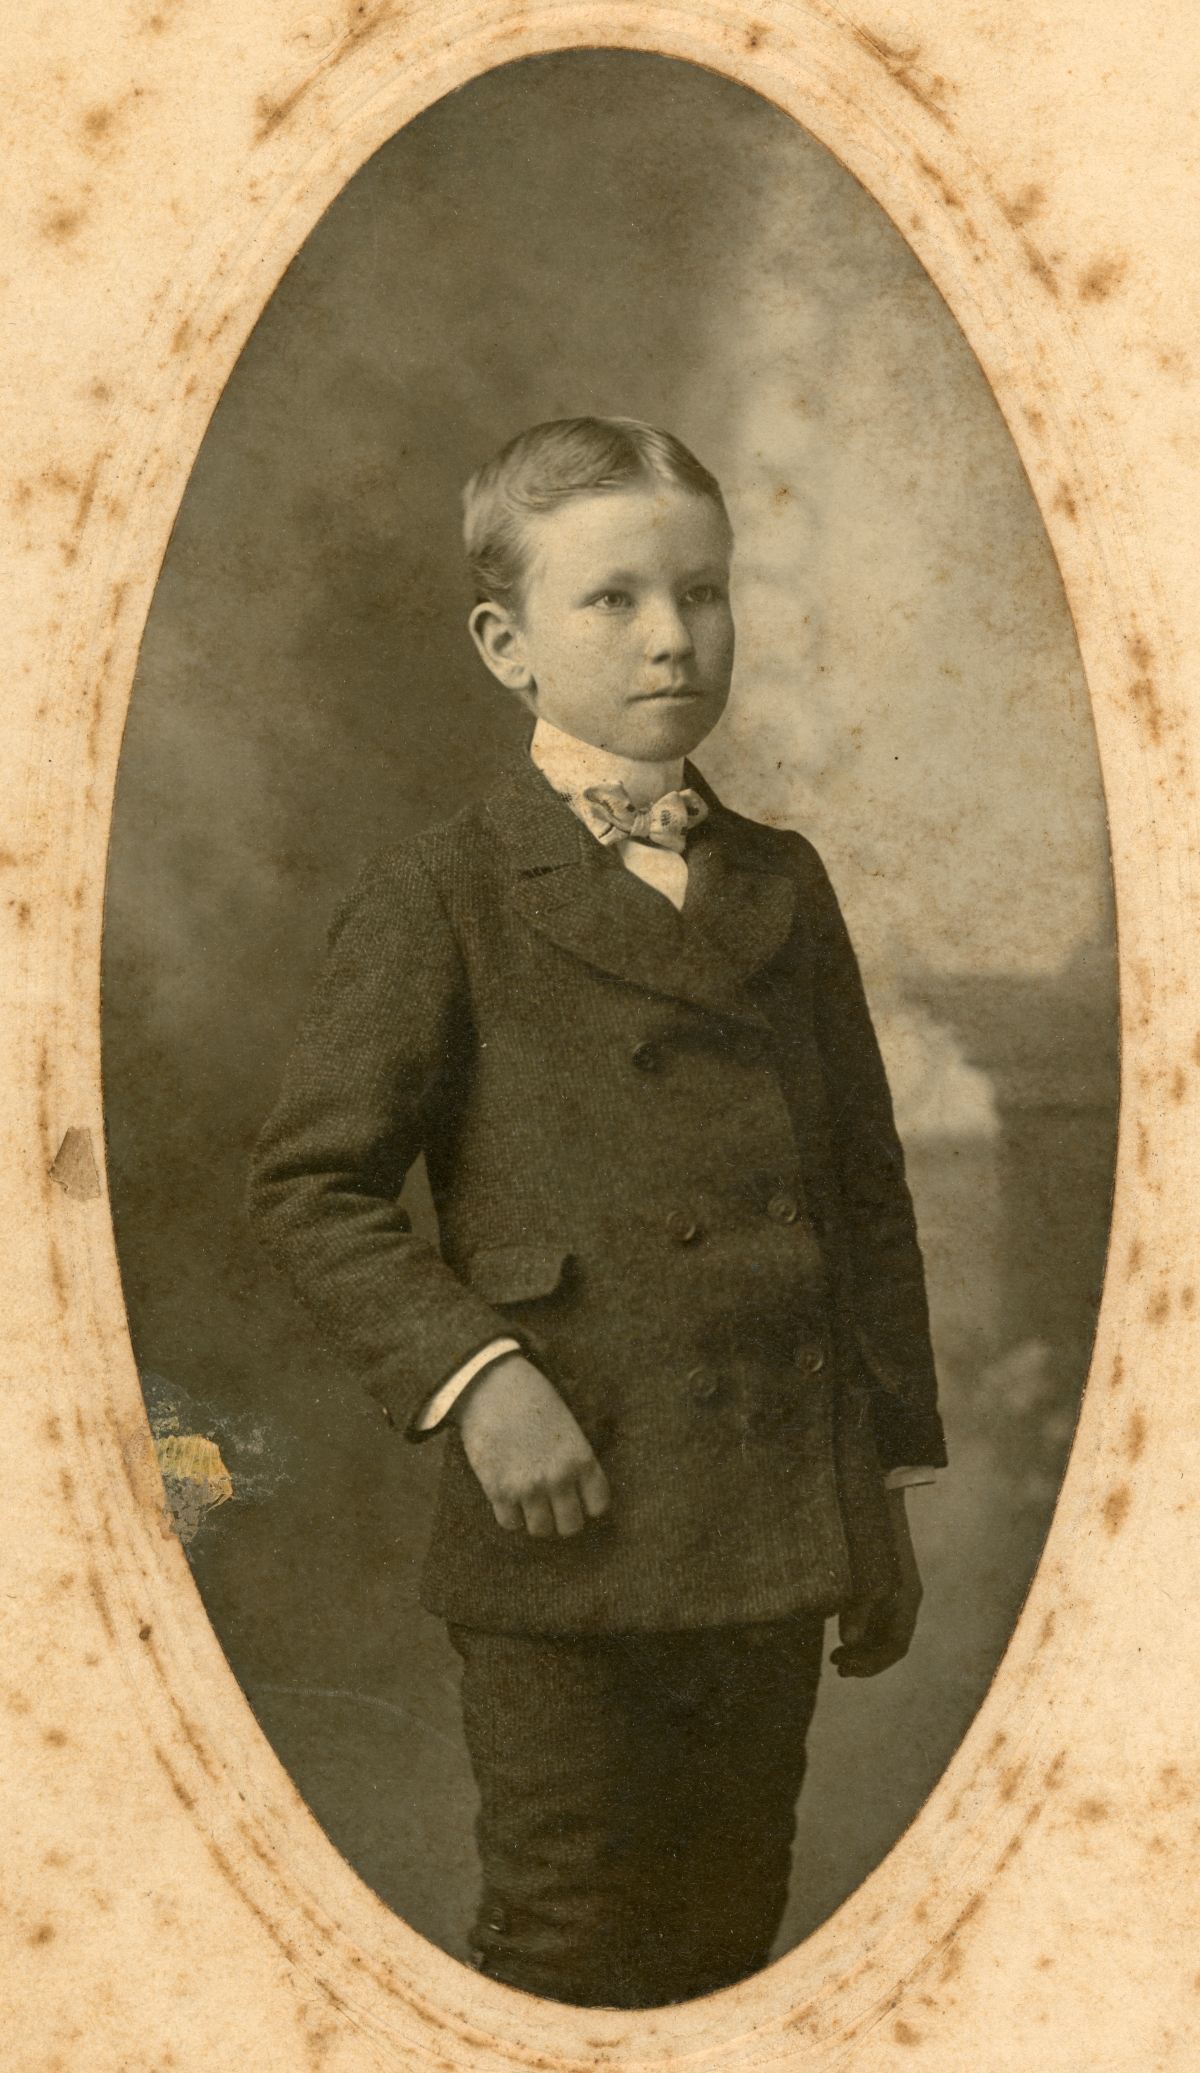 Studio portrait of William A. Sweeting from Bagdad, Florida.